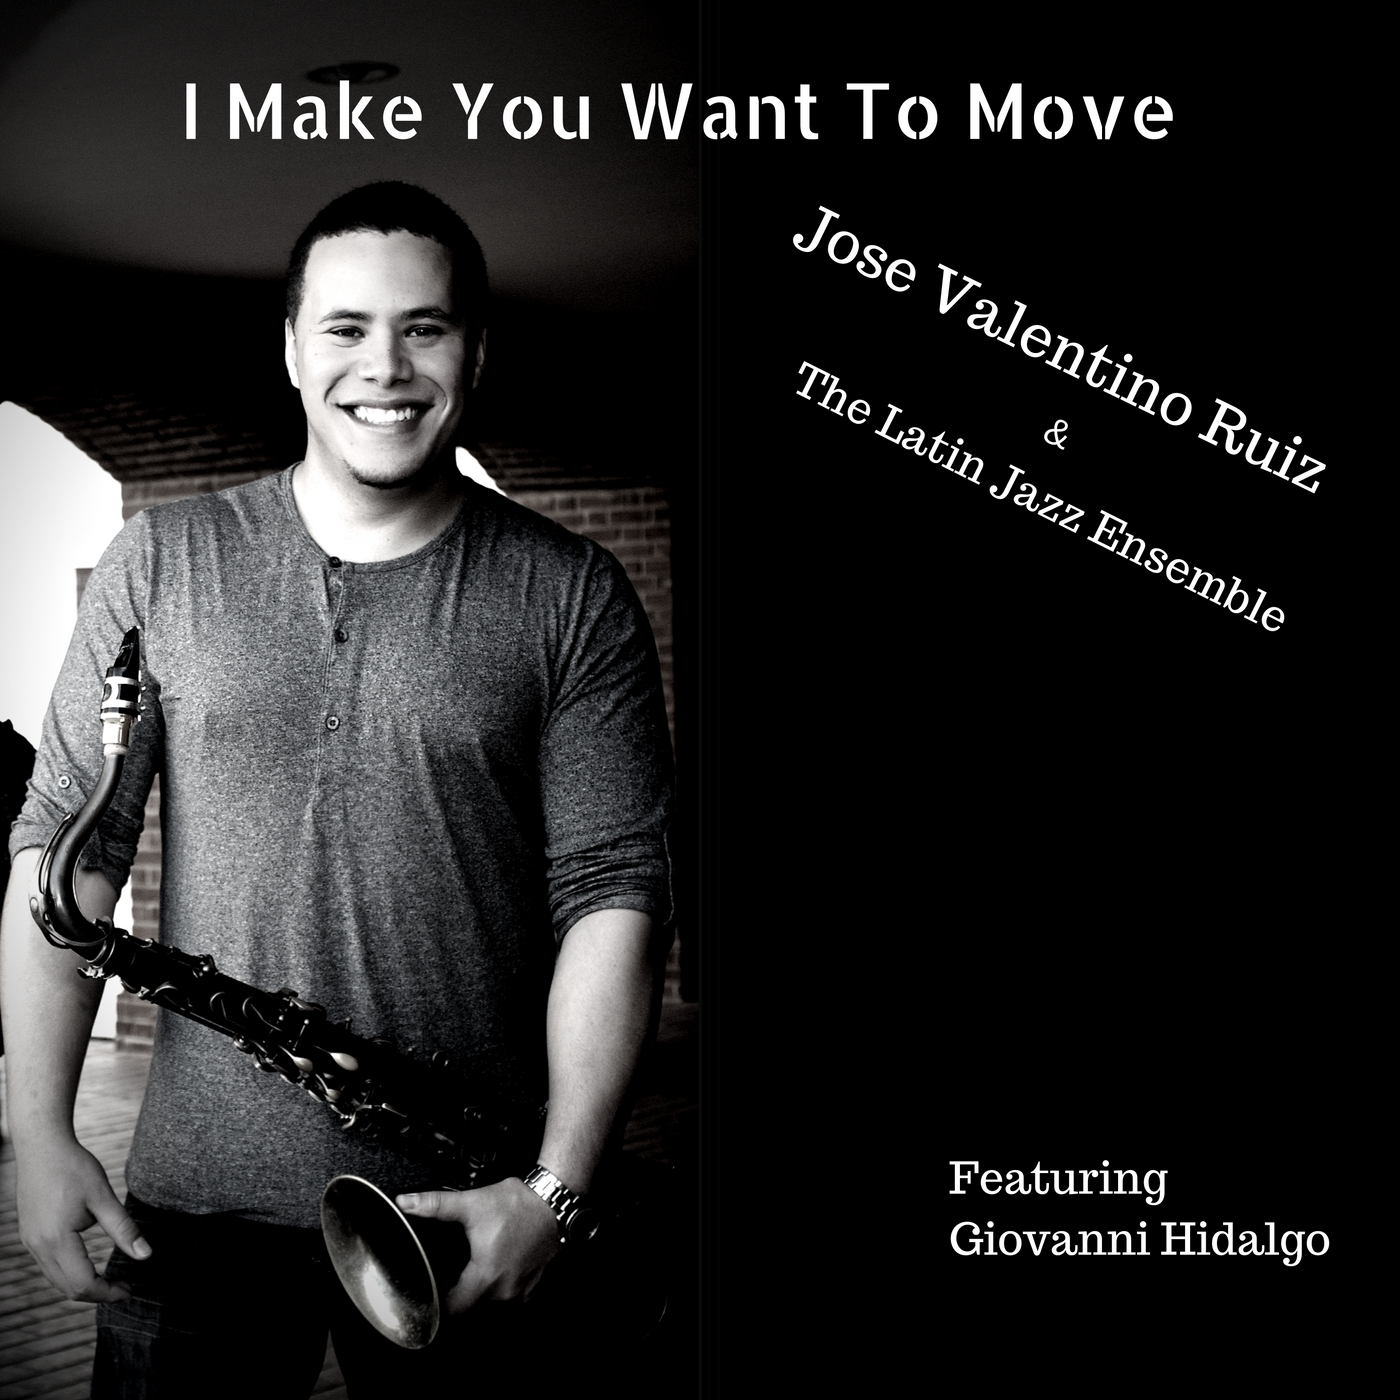 """This album, José Valentino Ruiz & The Latin Jazz Ensemble """"I Make You Want To Move"""" is nominated for the 16th Annual Latin GRAMMY  ®   Awards, Best Latin Jazz Album of the Year! José served various roles including: Artist, Composer & Arranger, Producer, and Co-engineer! The album was distribubuted under his former record label, JVR Music Works Inc."""